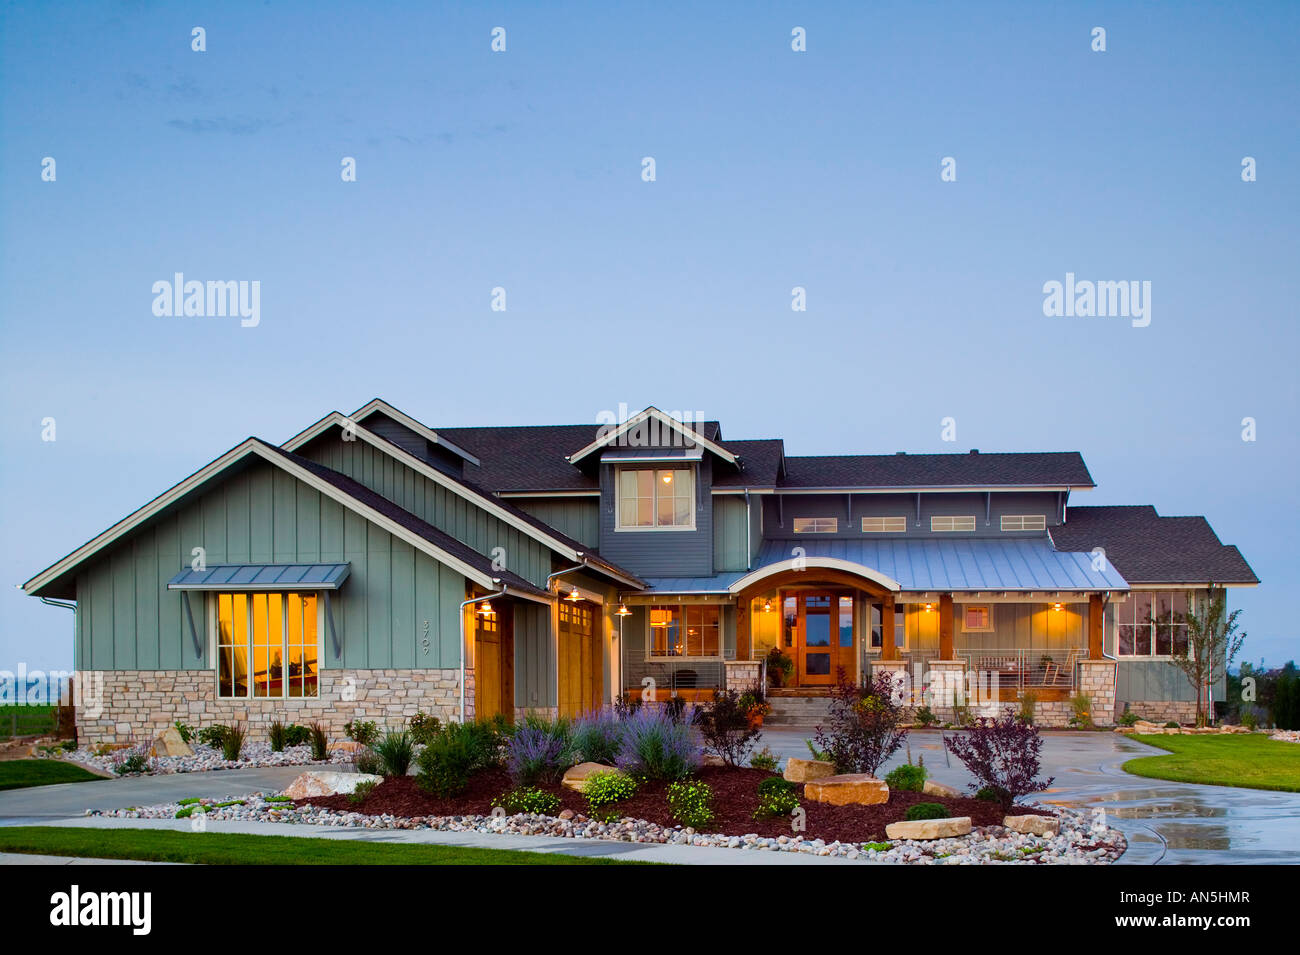 Colorado luxury modern farm style home exterior